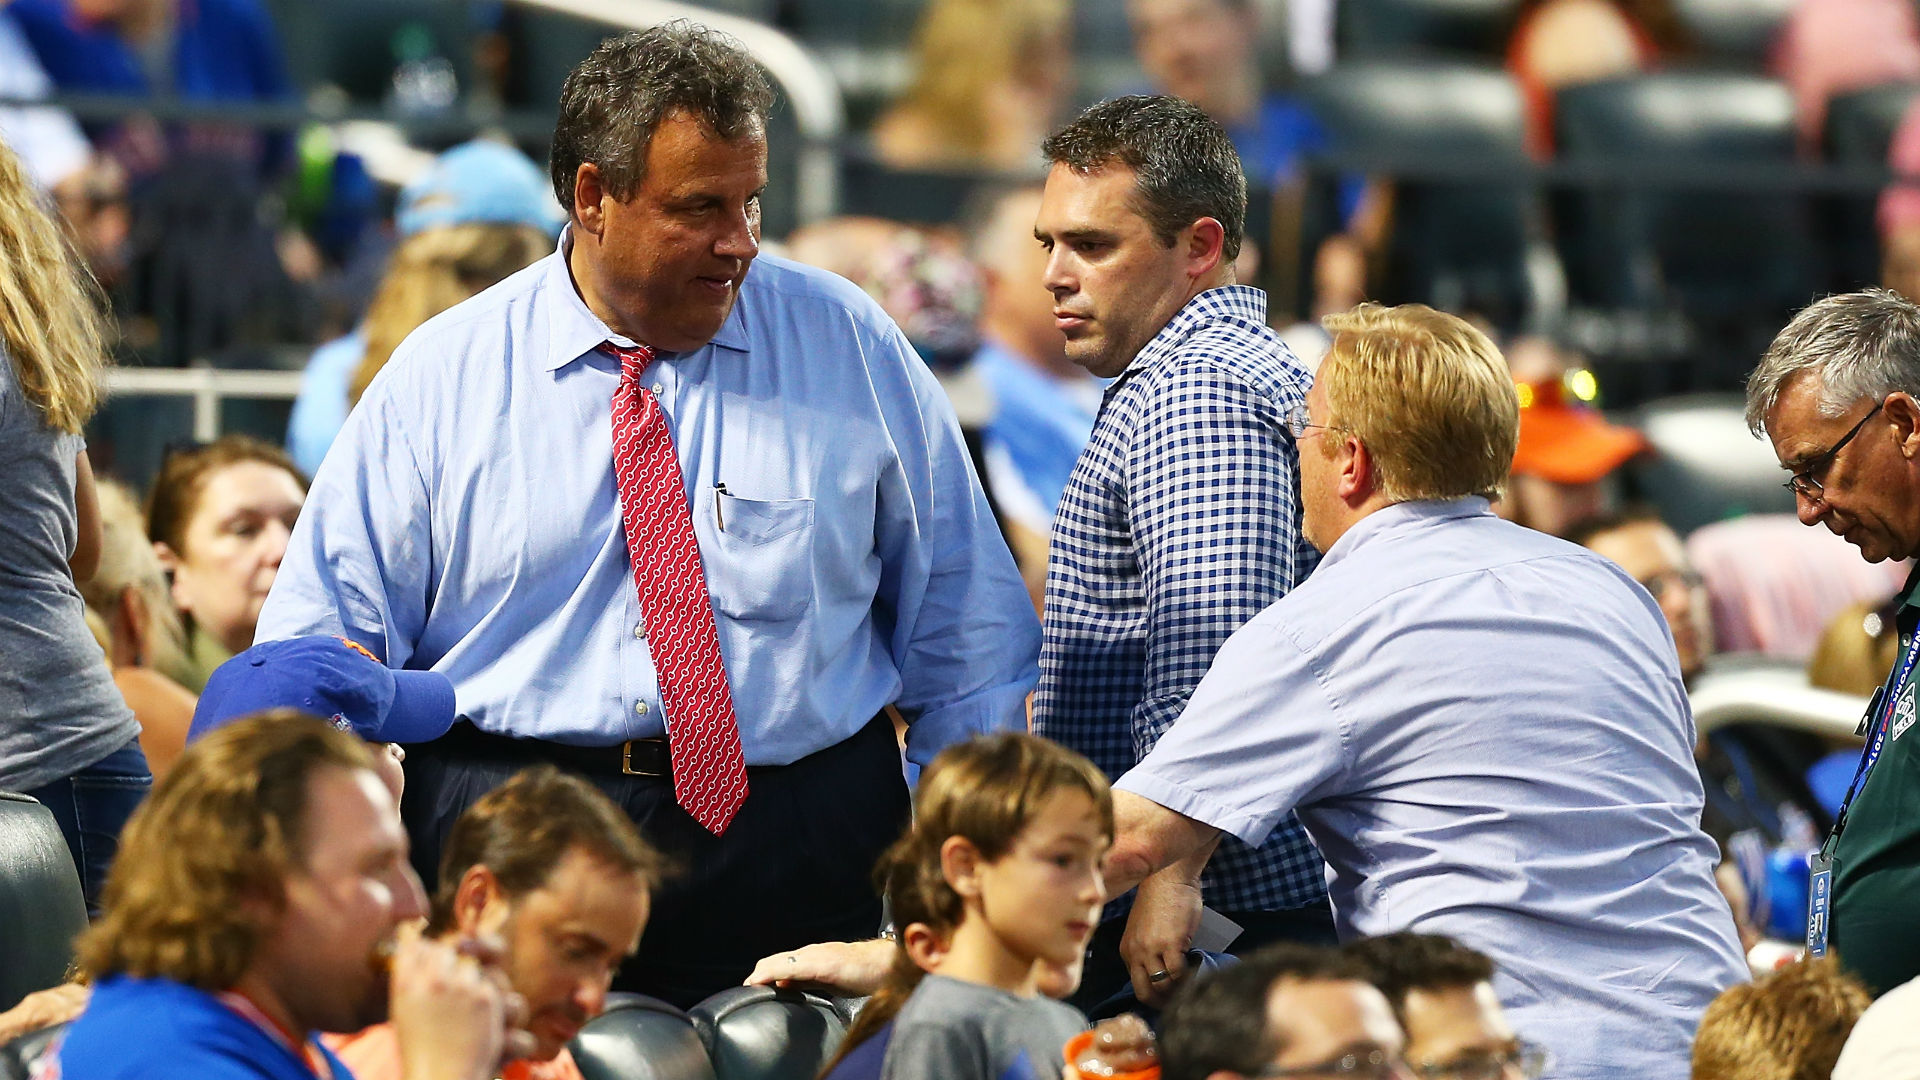 Chris Christie Confronts Man Who Said He 'Sucks'